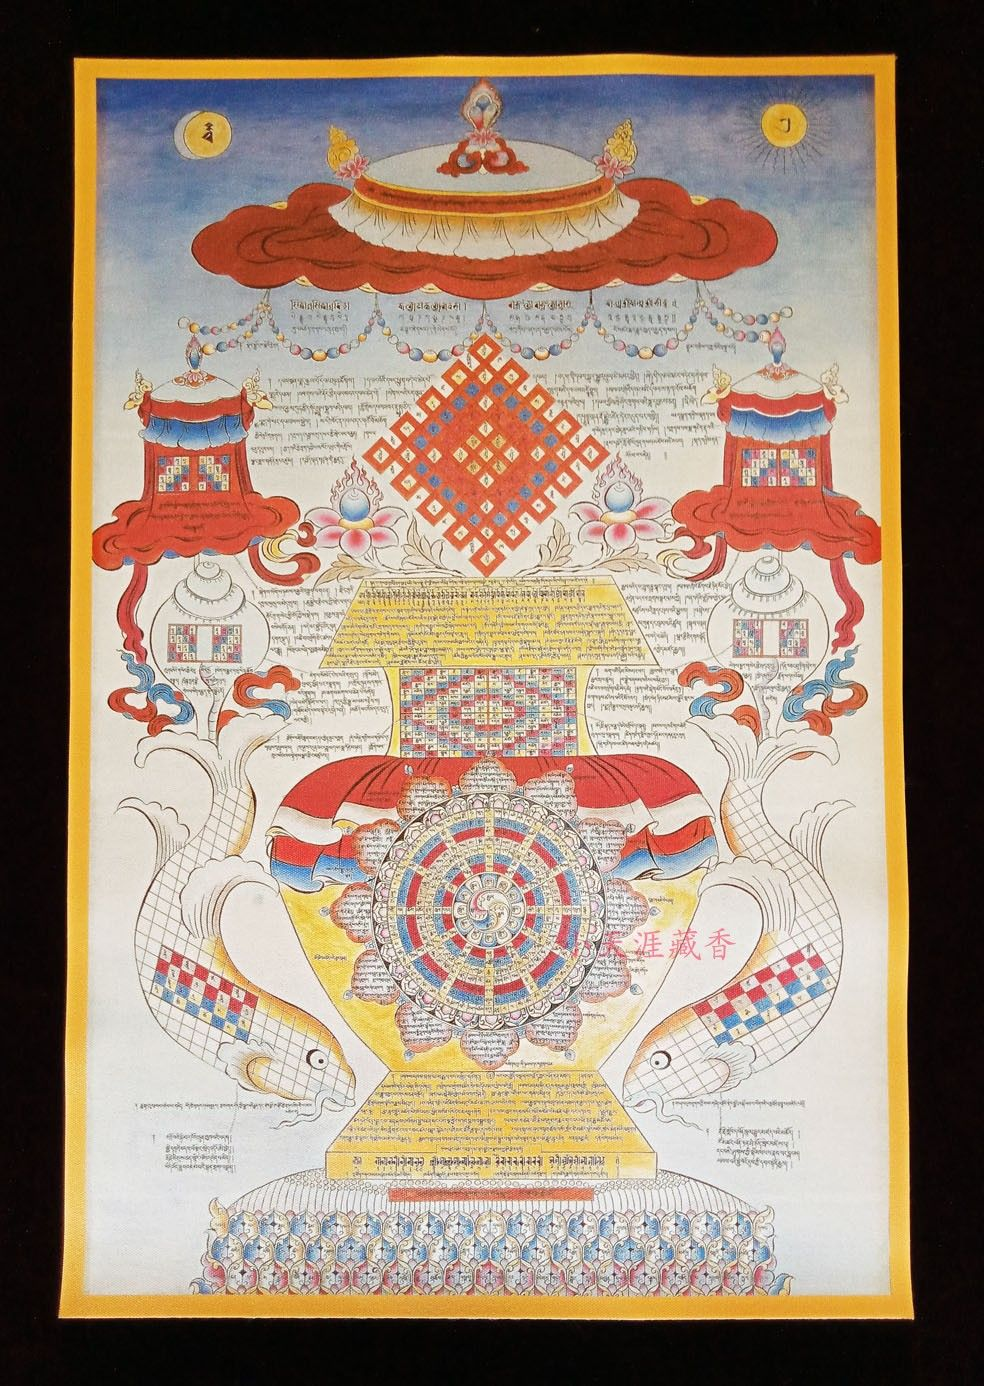 Pin by Roland Mullins on Buddhist Yantra in 2019 | Buddhism, Tibet